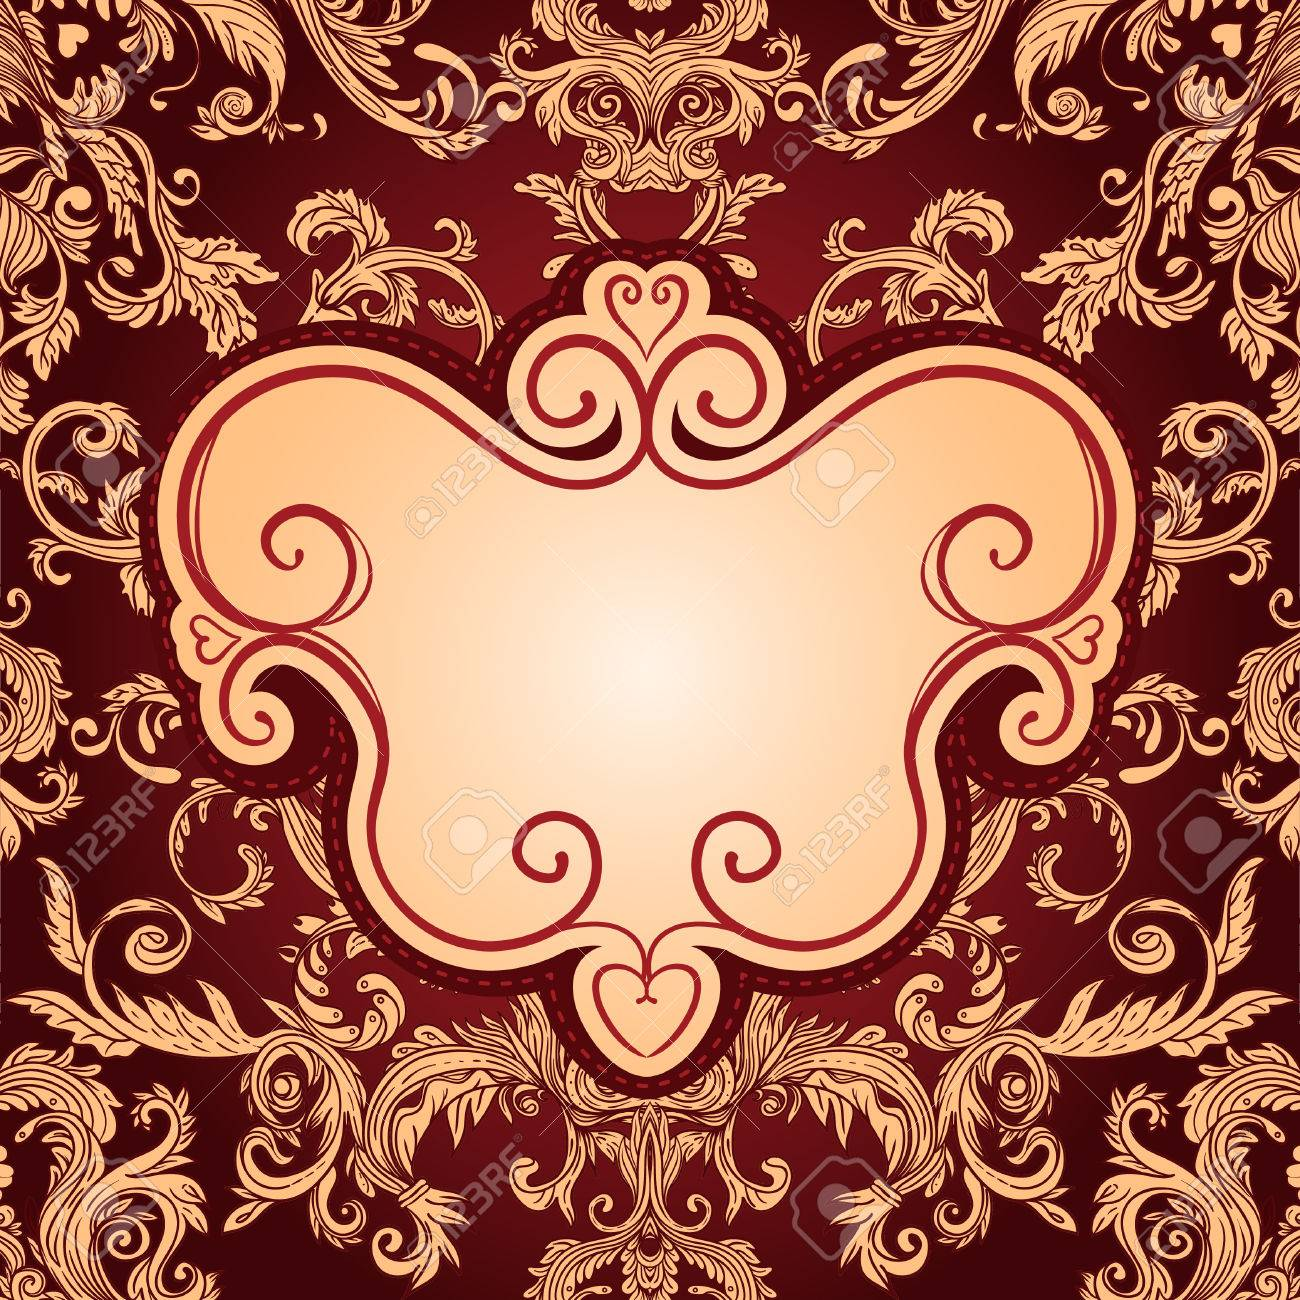 Vintage background ornate baroque pattern vector illustration stock - Vintage Background Ornate Baroque Pattern Vector Illustration Stock Vector 33592492